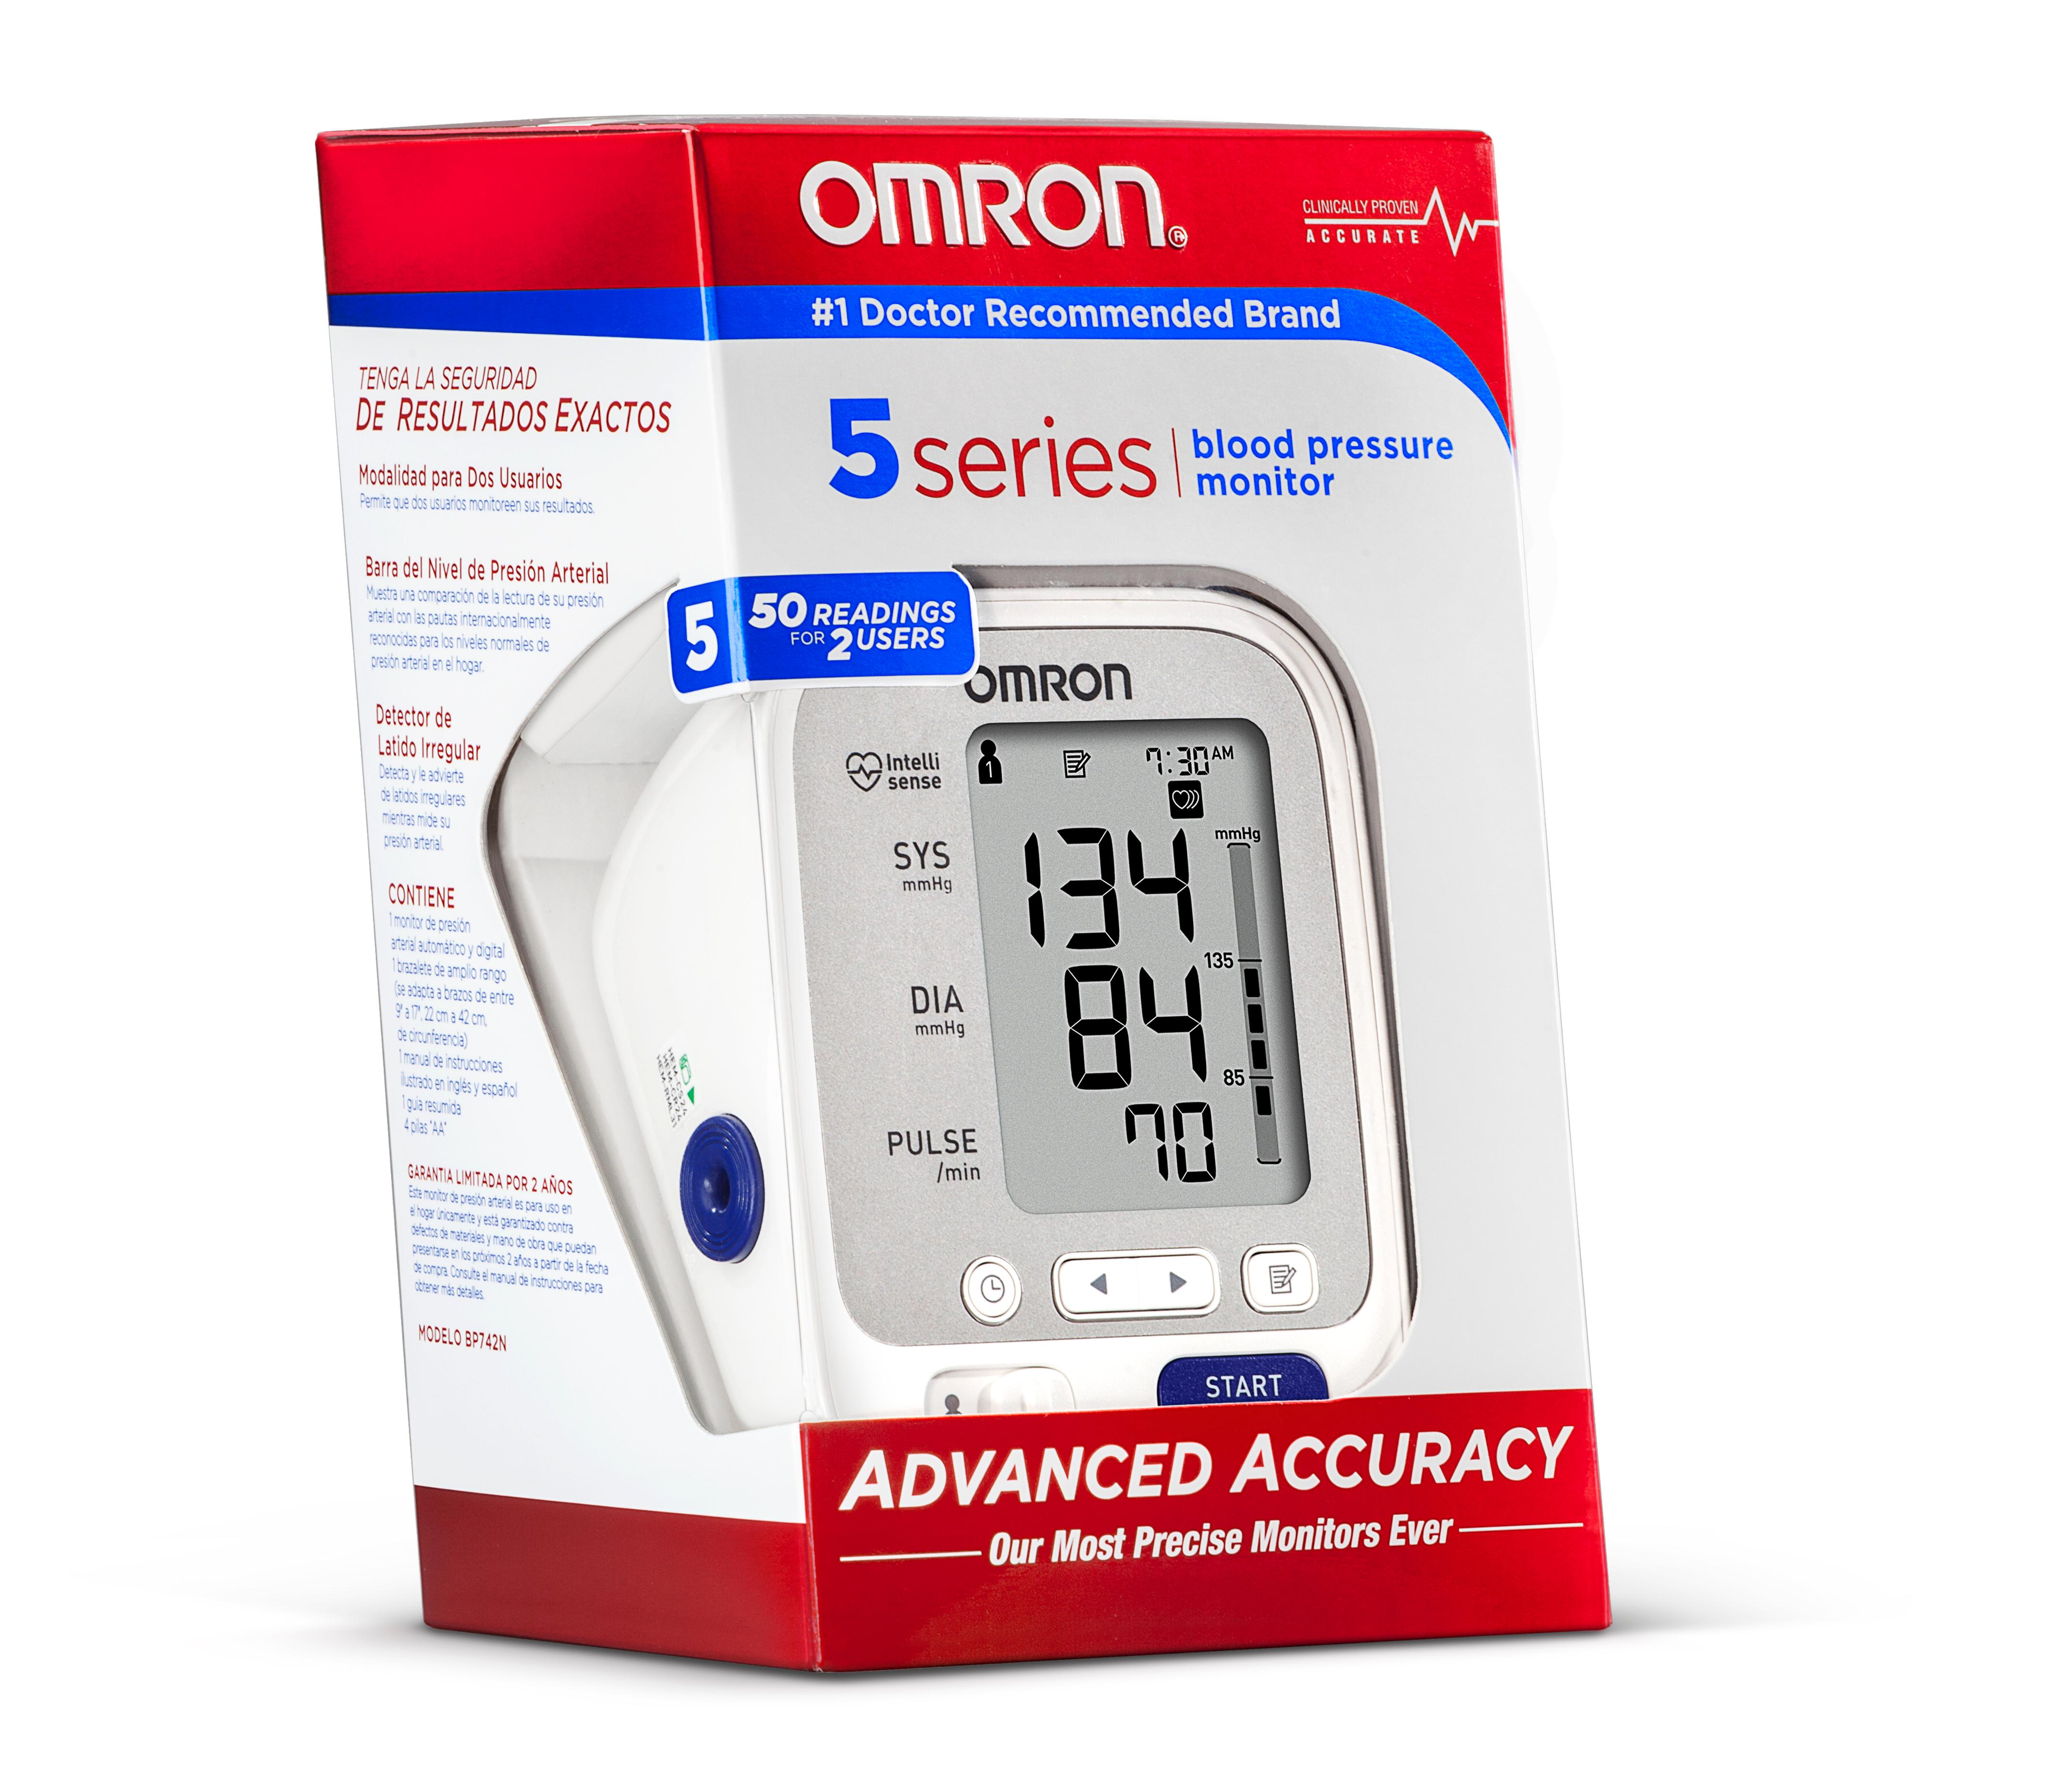 Omron 10 Series Digital Upper Arm Blood Pressure Monitor Plus Bluetooth Smart Technology. Manage and track your last readings on your smartphone, compatible with Apple iPhone 5, 5C, 5S, iOS 7 Feel empowered by accuracy with exclusive TruRead technology that automatically takes three consecutive readings one Reviews: